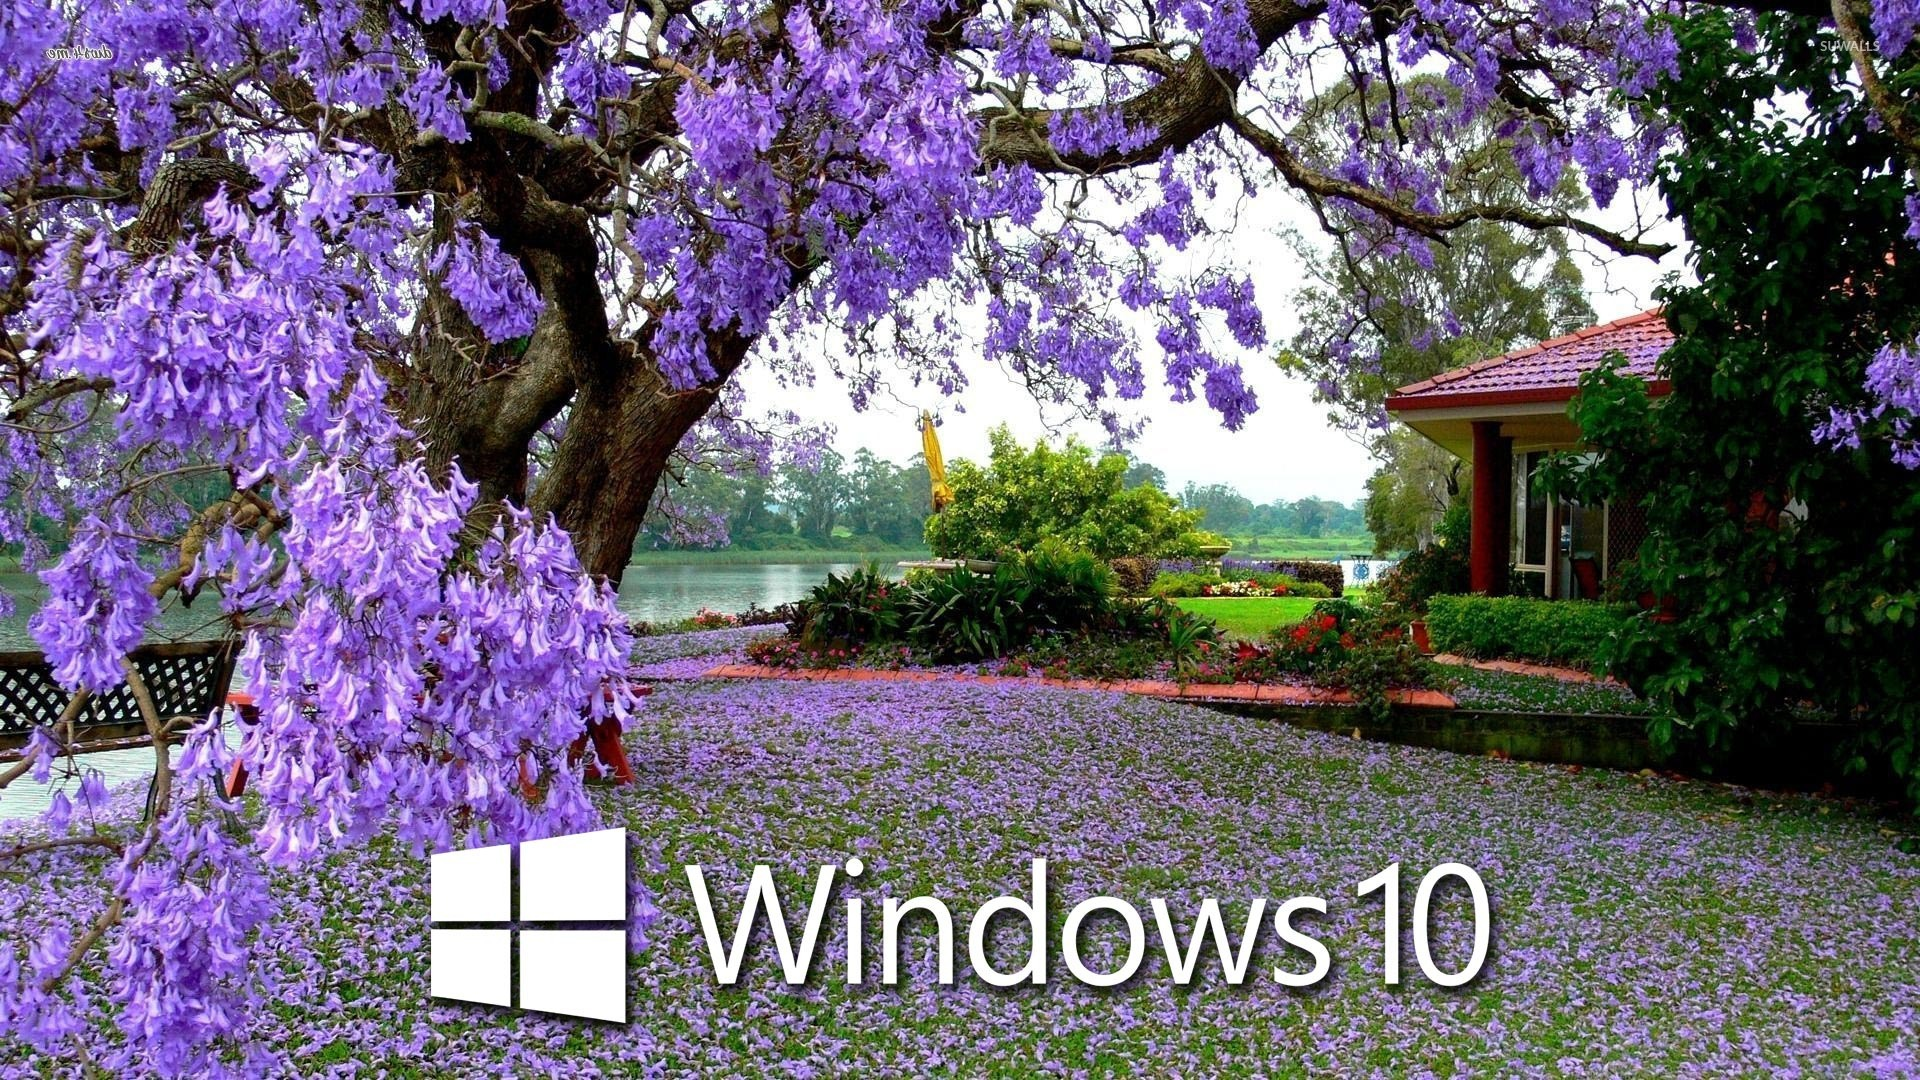 Windows 10 on the purple blossoms wallpaper - Computer wallpapers